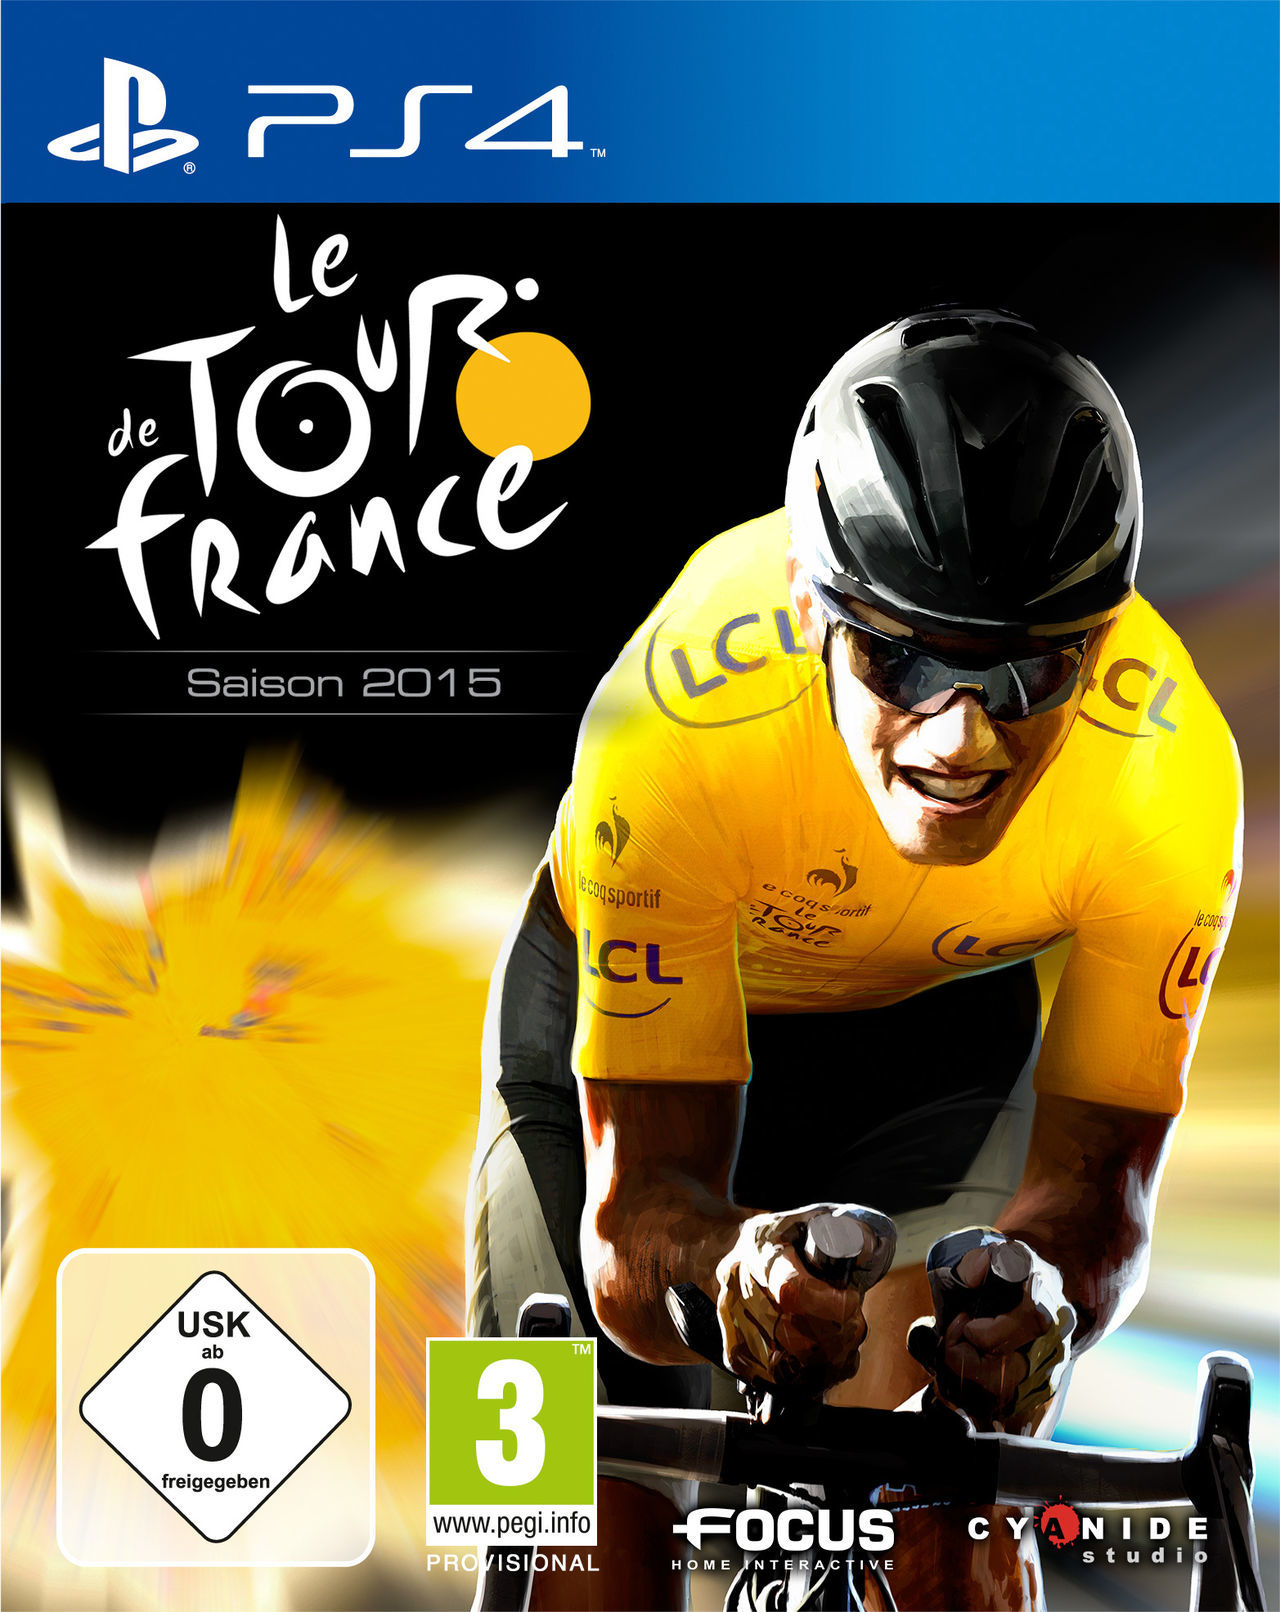 le tour de france 2015 toda la informaci n ps4 xbox one ps3 vandal. Black Bedroom Furniture Sets. Home Design Ideas